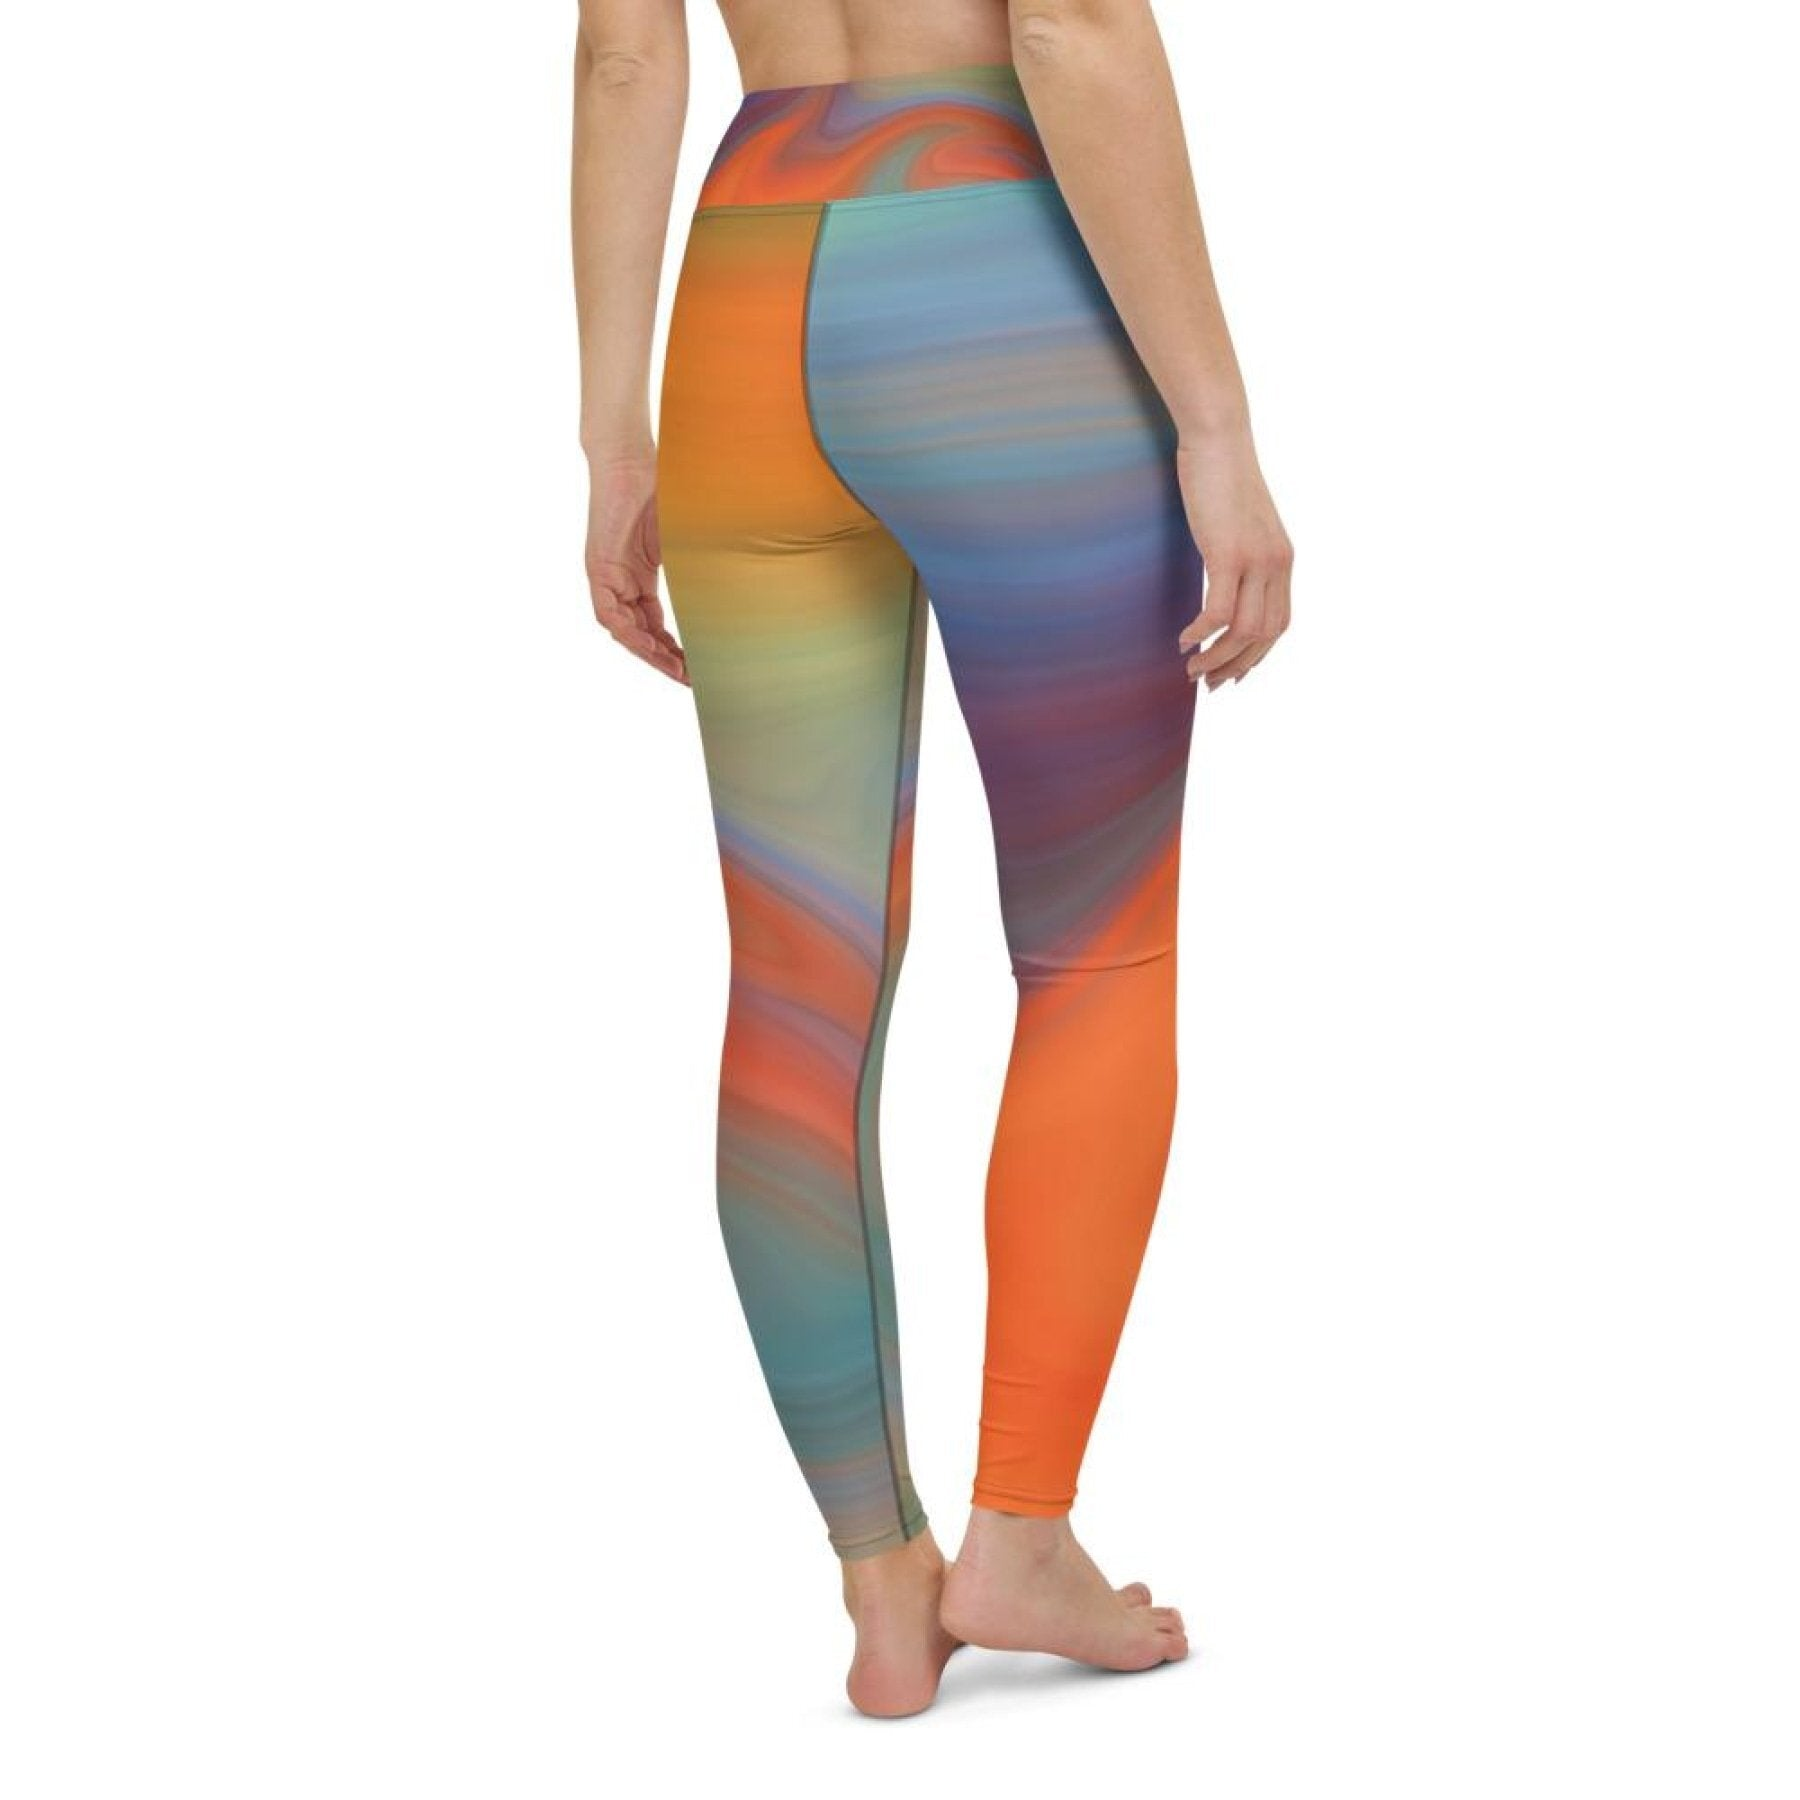 Womens Athletic Pants, Orange Swirl Black Seam Style High Waist Yoga Leggings